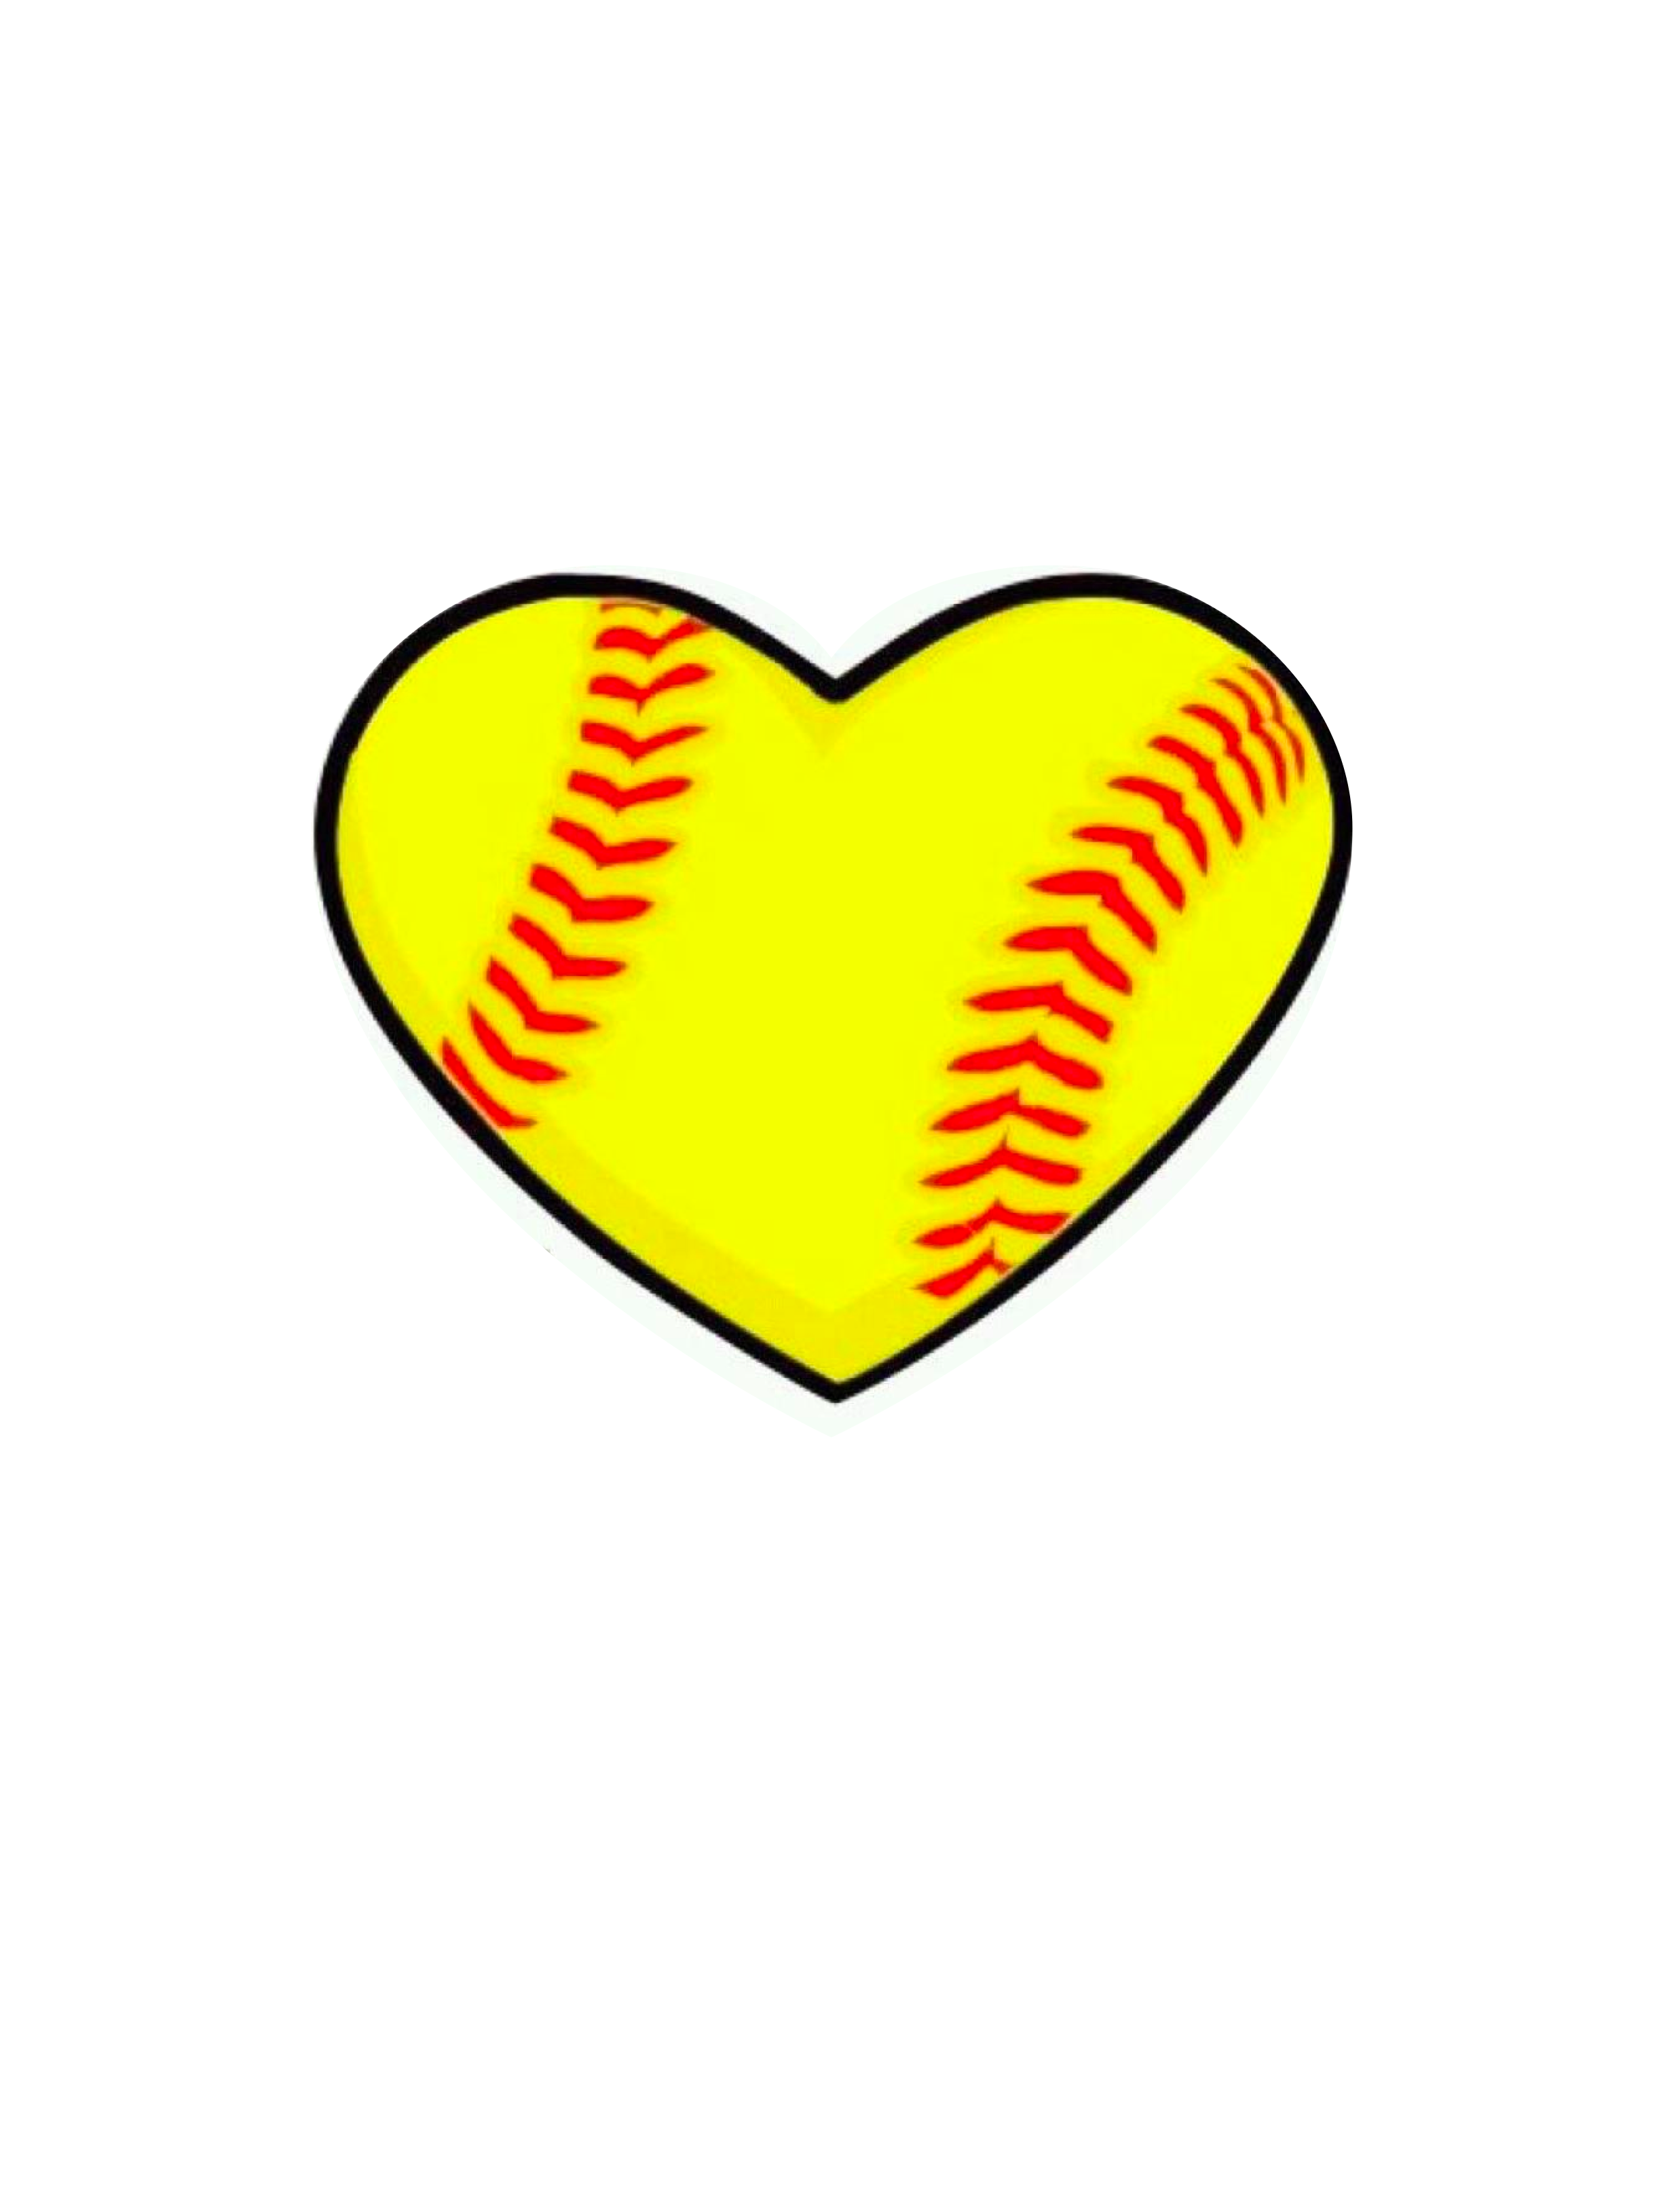 Softball free clipart svg royalty free Free Cartoon Softball Cliparts, Download Free Clip Art, Free Clip ... svg royalty free